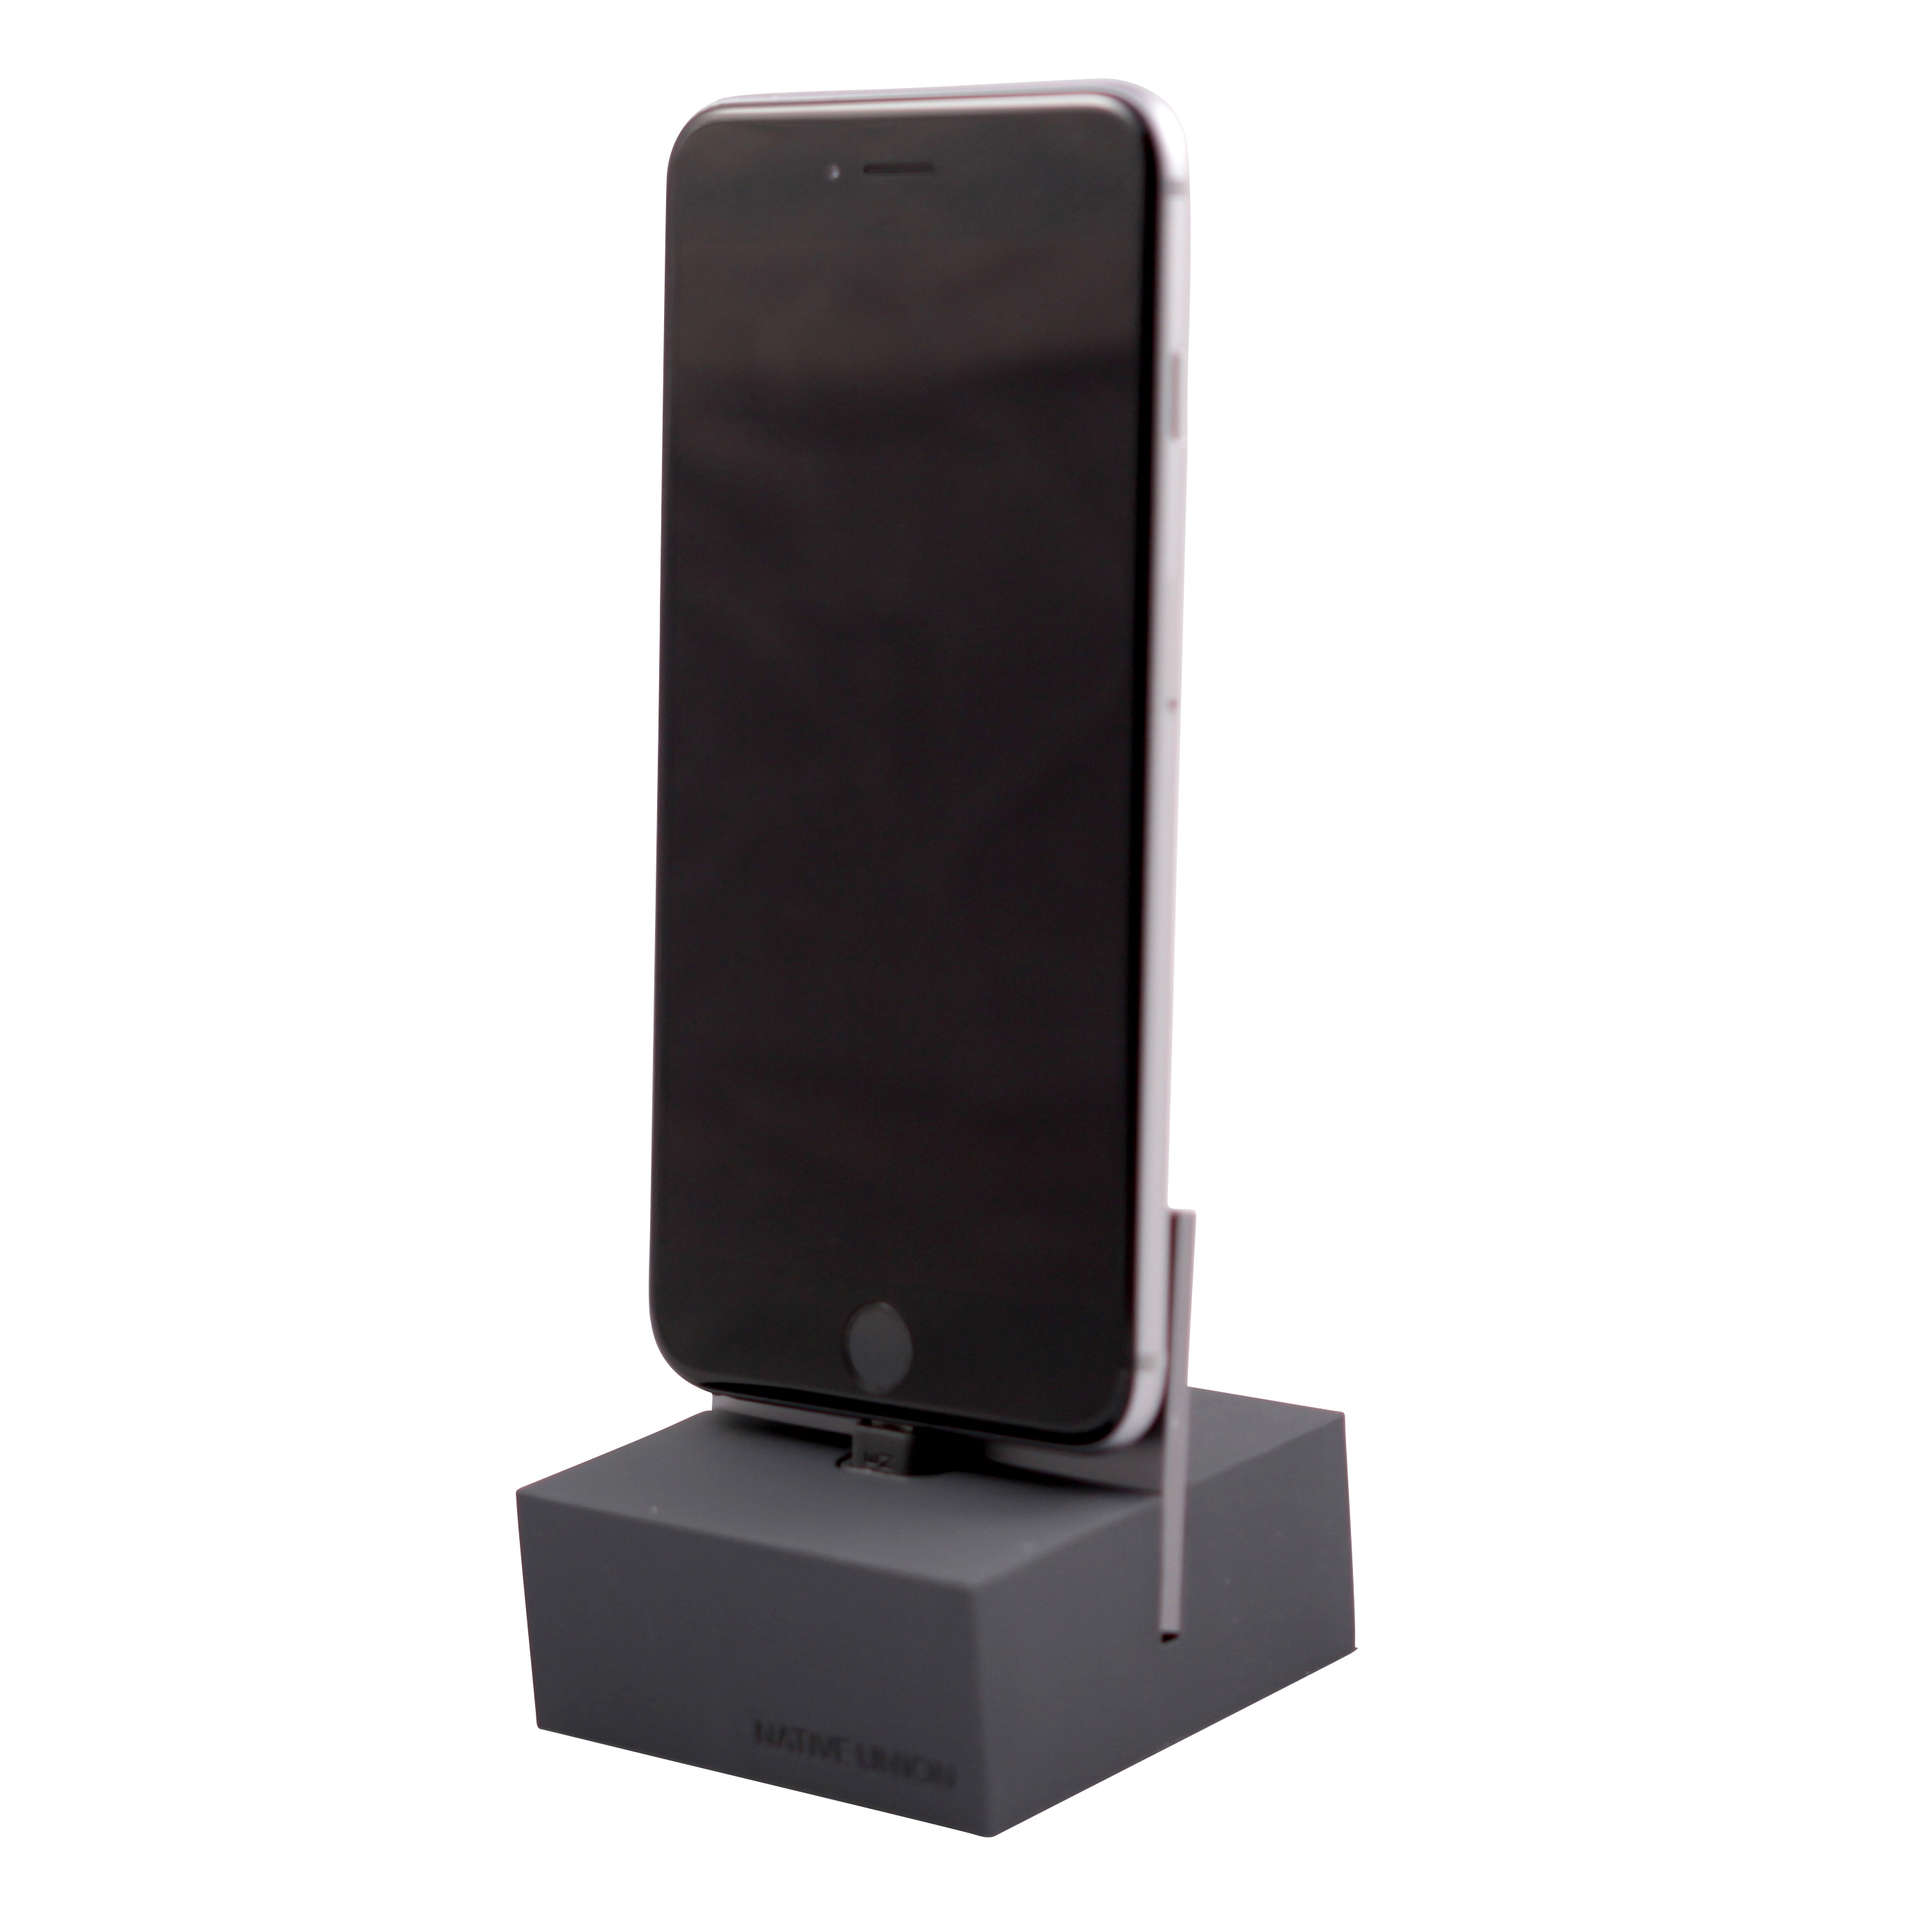 NU iPhone Dock Plus